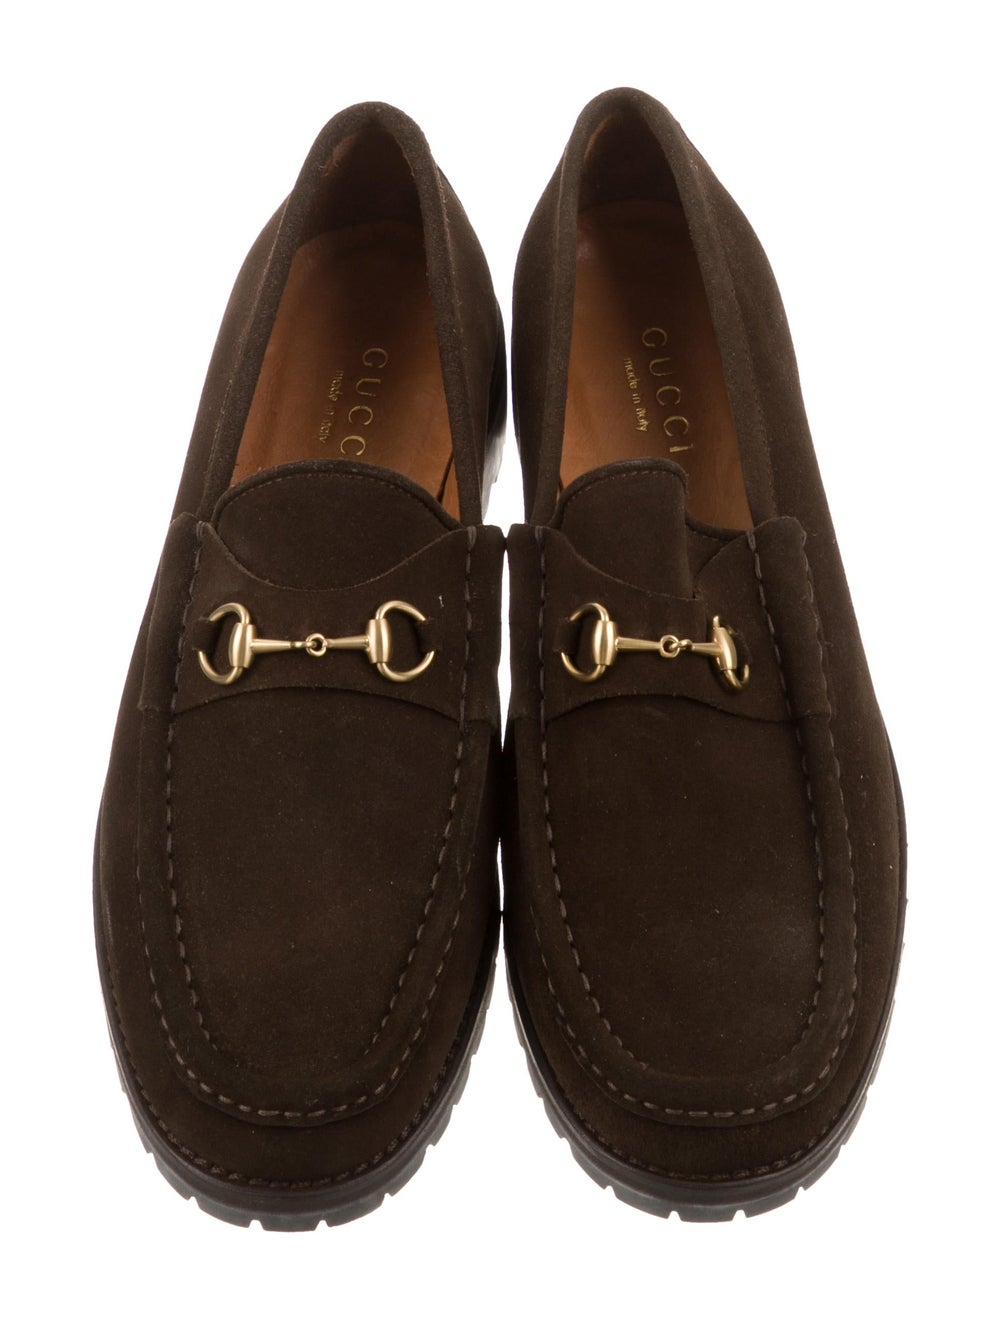 Gucci Suede Horsebit Loafers brass - image 3